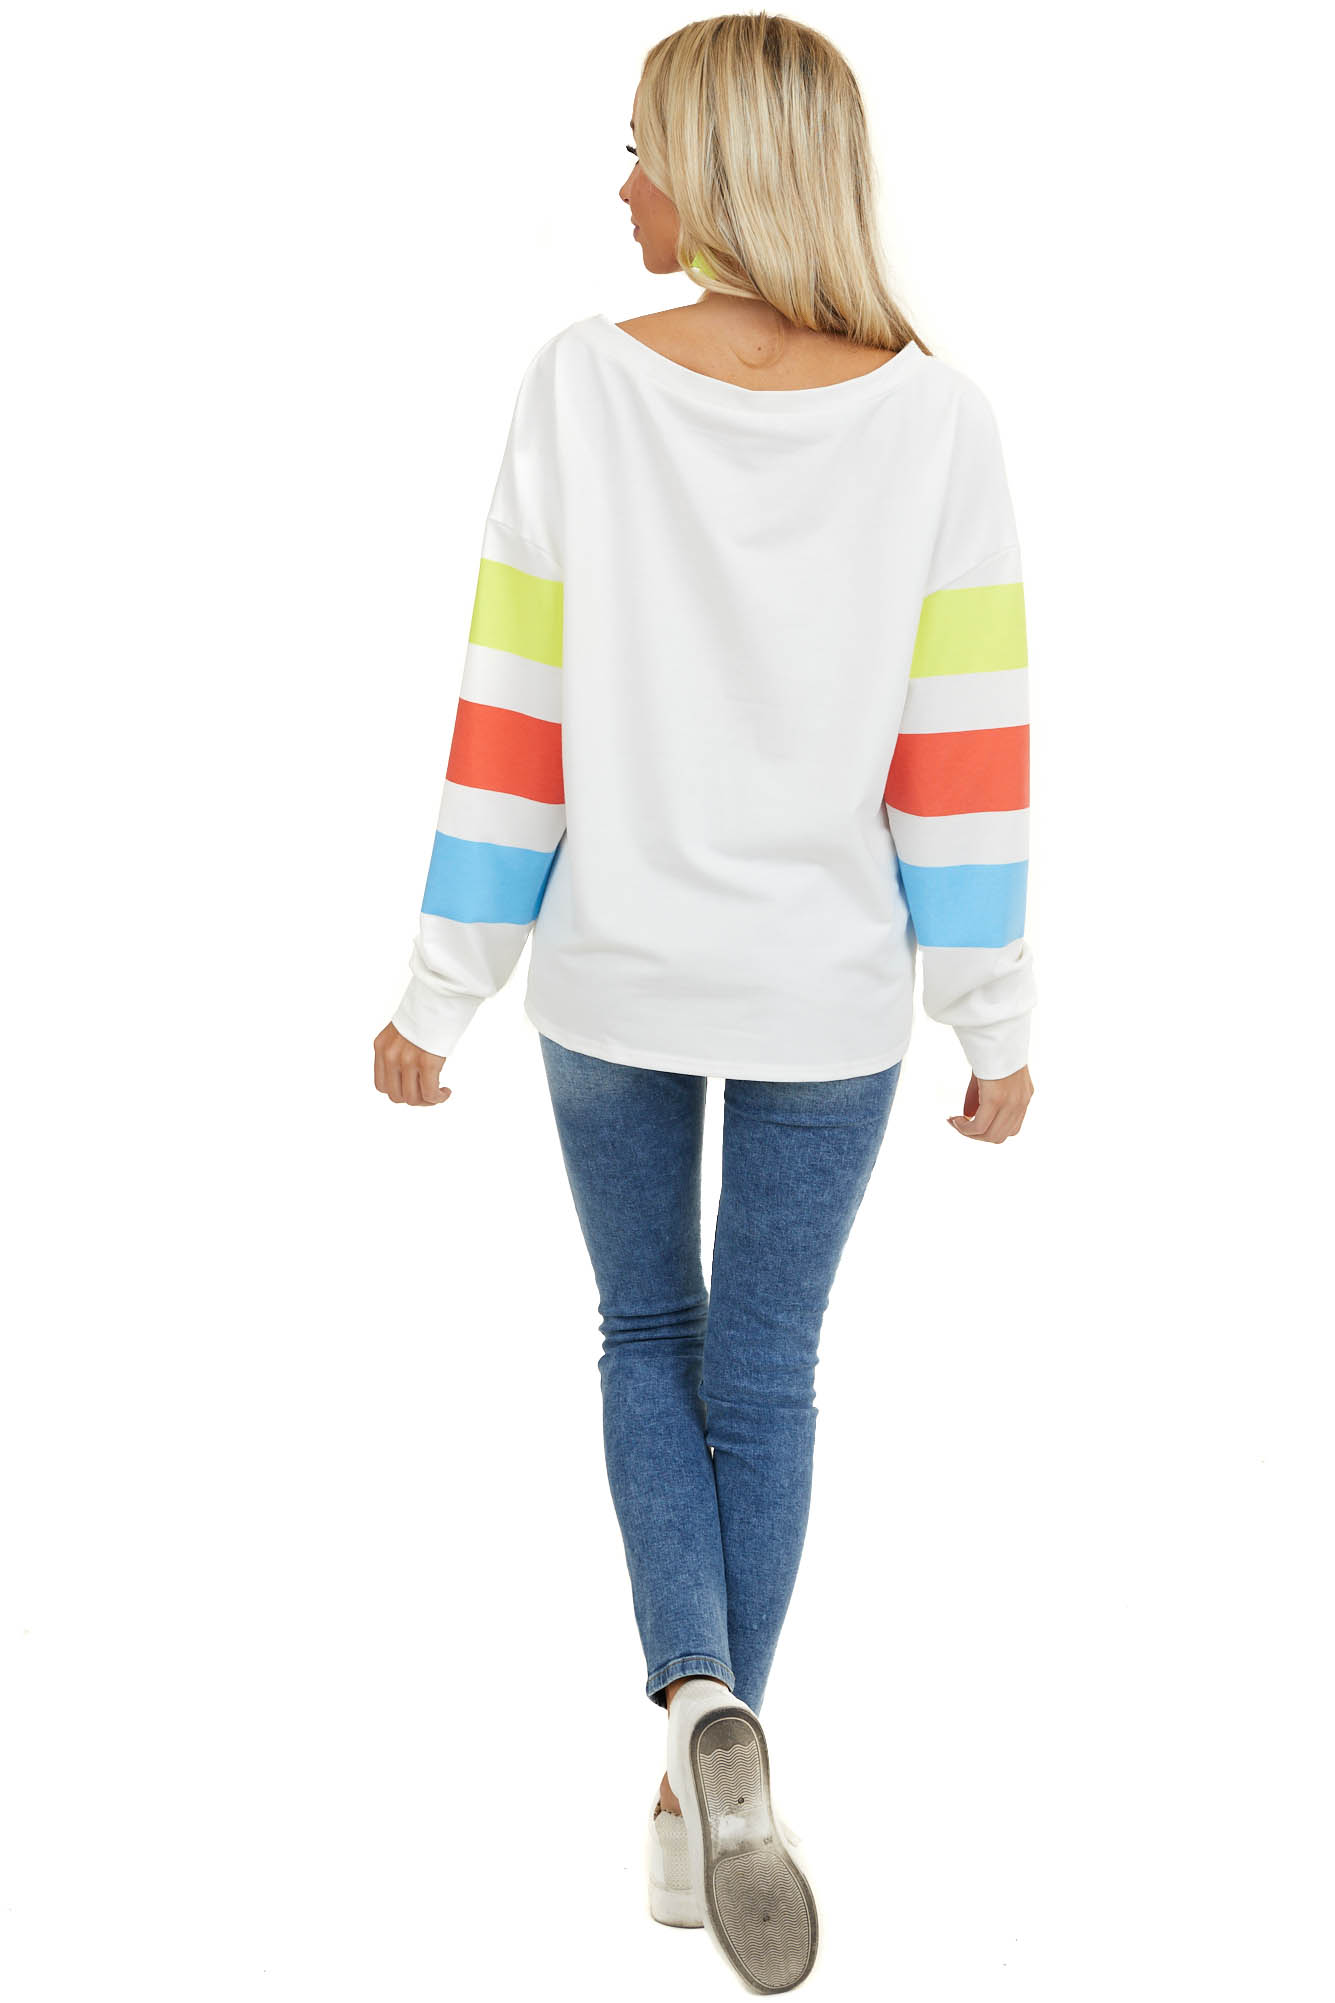 Neon Yellow and Azure Blue Striped Long Sleeve Knit Top